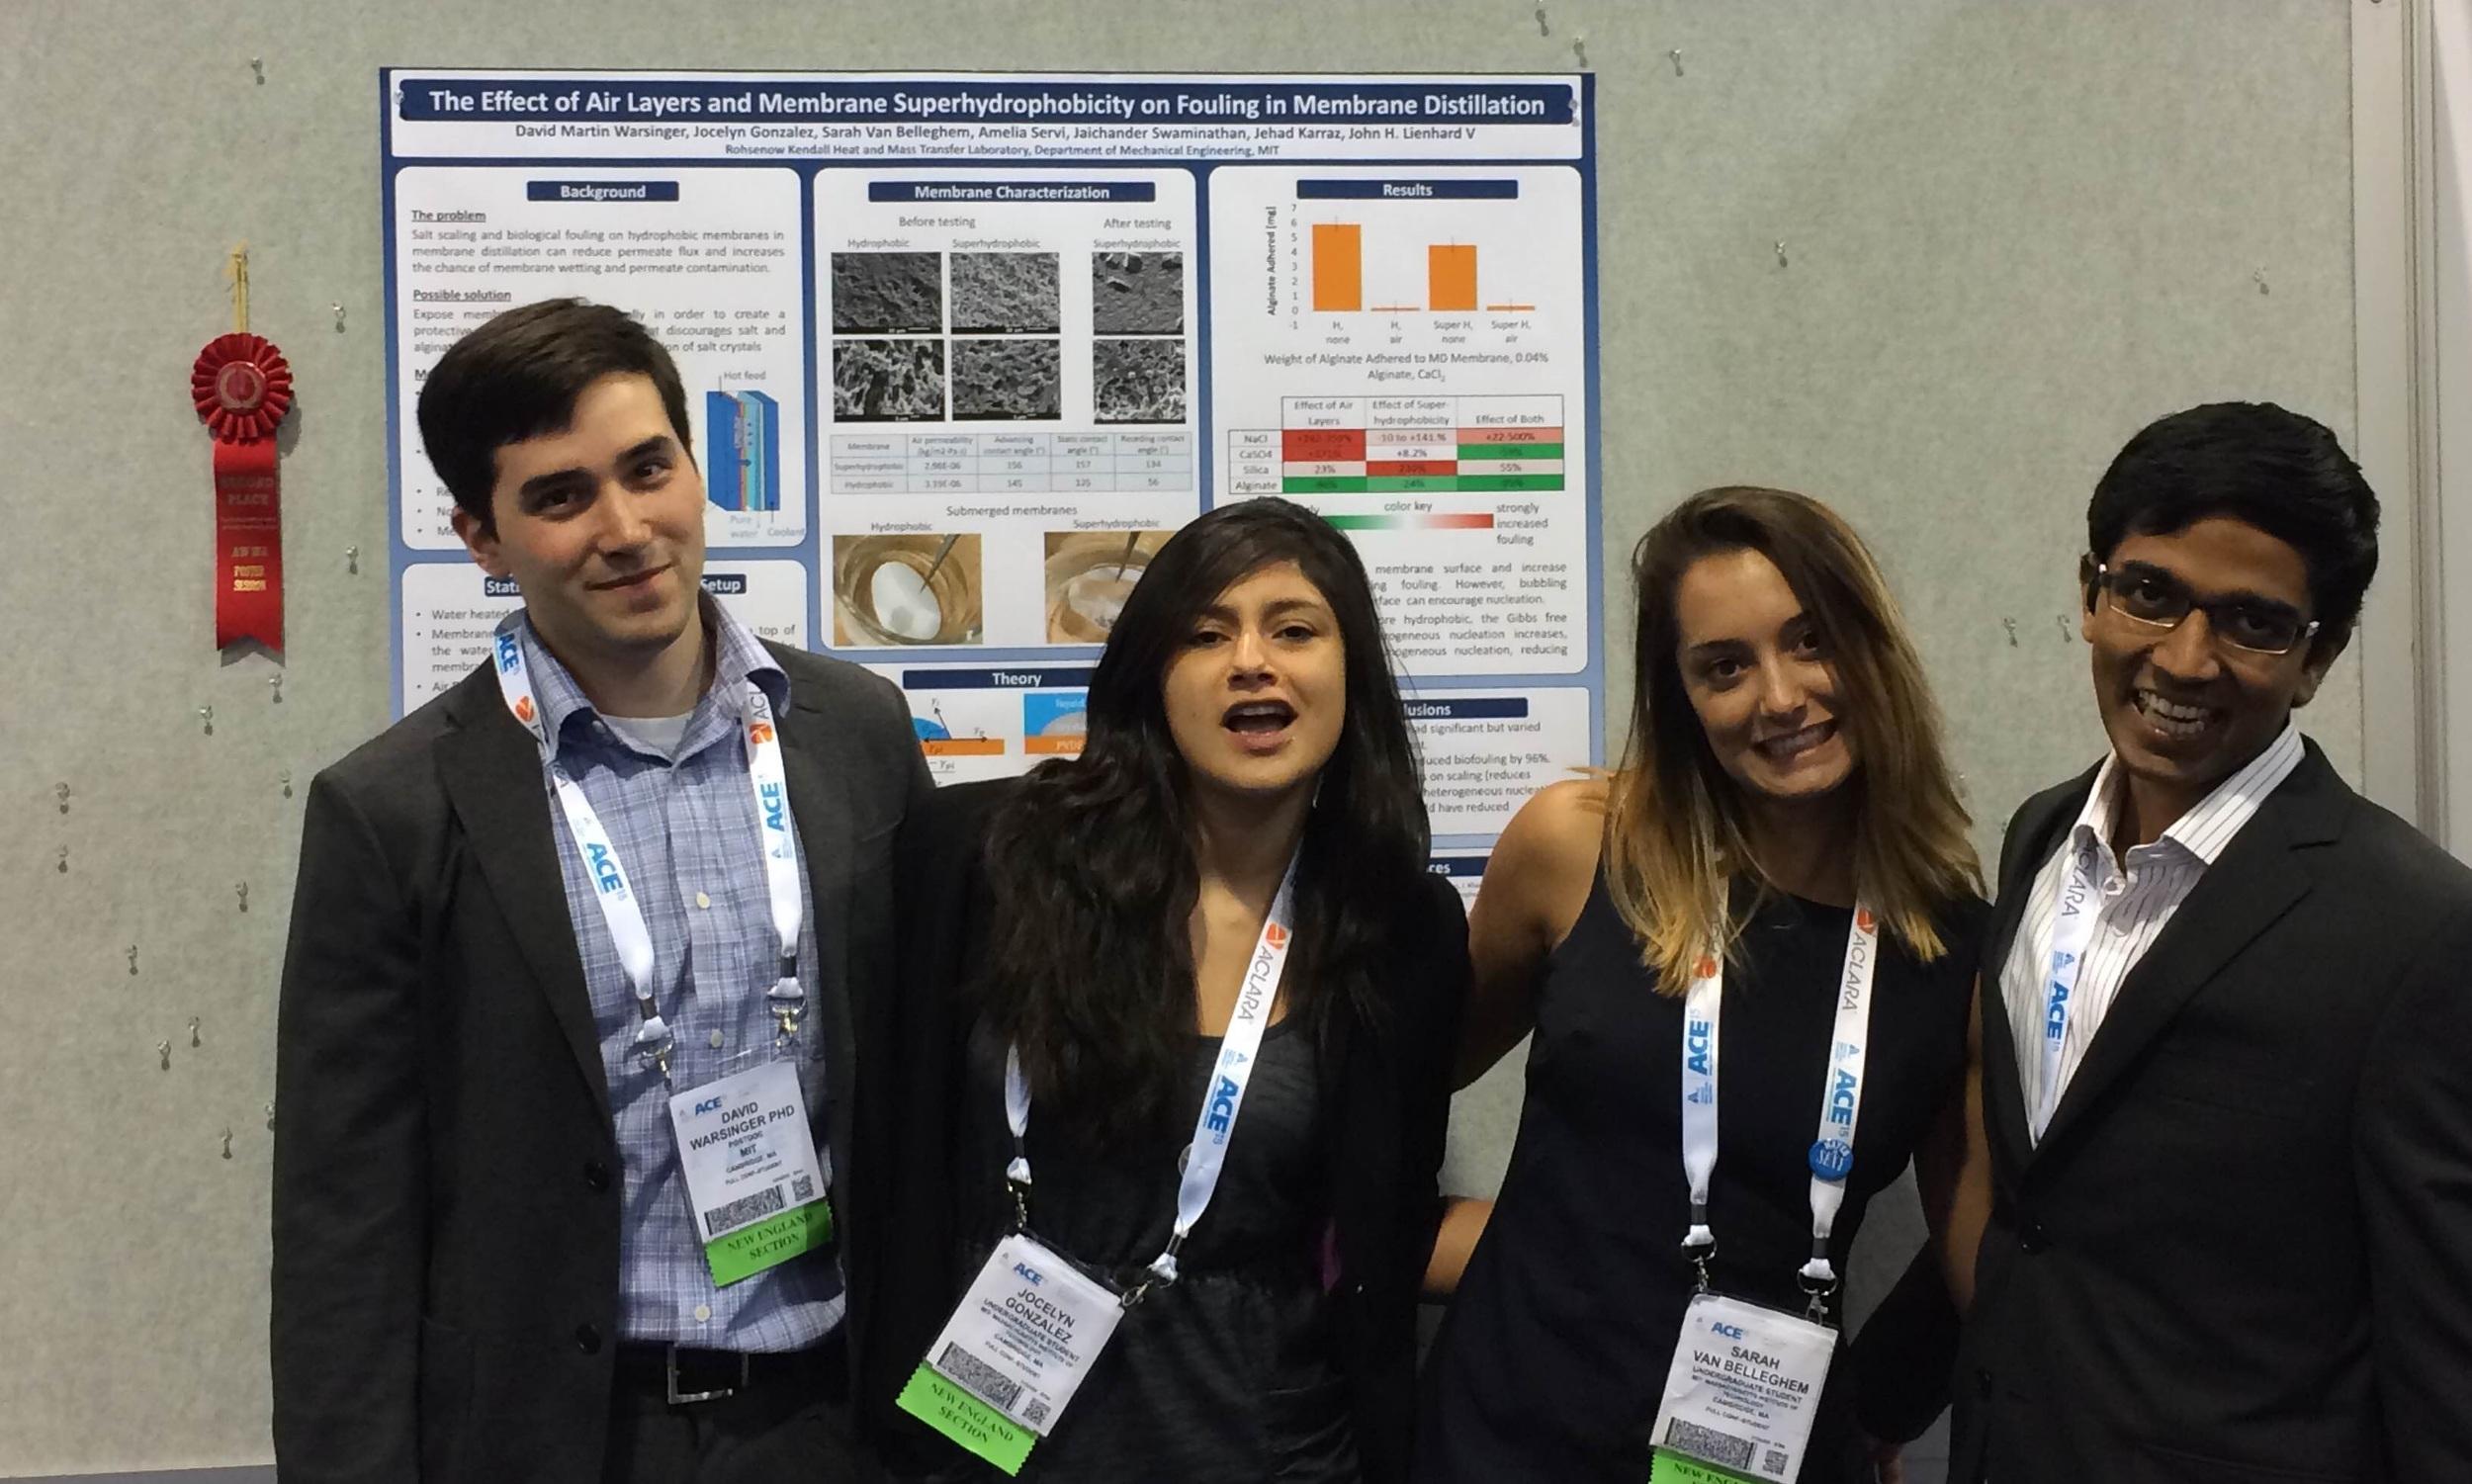 Poster coauthors in a silly photo (David, Jai, and the then undergrads Sarah and Jocelyn) at the ACE AWWA conference, the world's largest water conference, with over 10,000 attendees. They won second best poster for this one, and first for the other Poster that we presented.